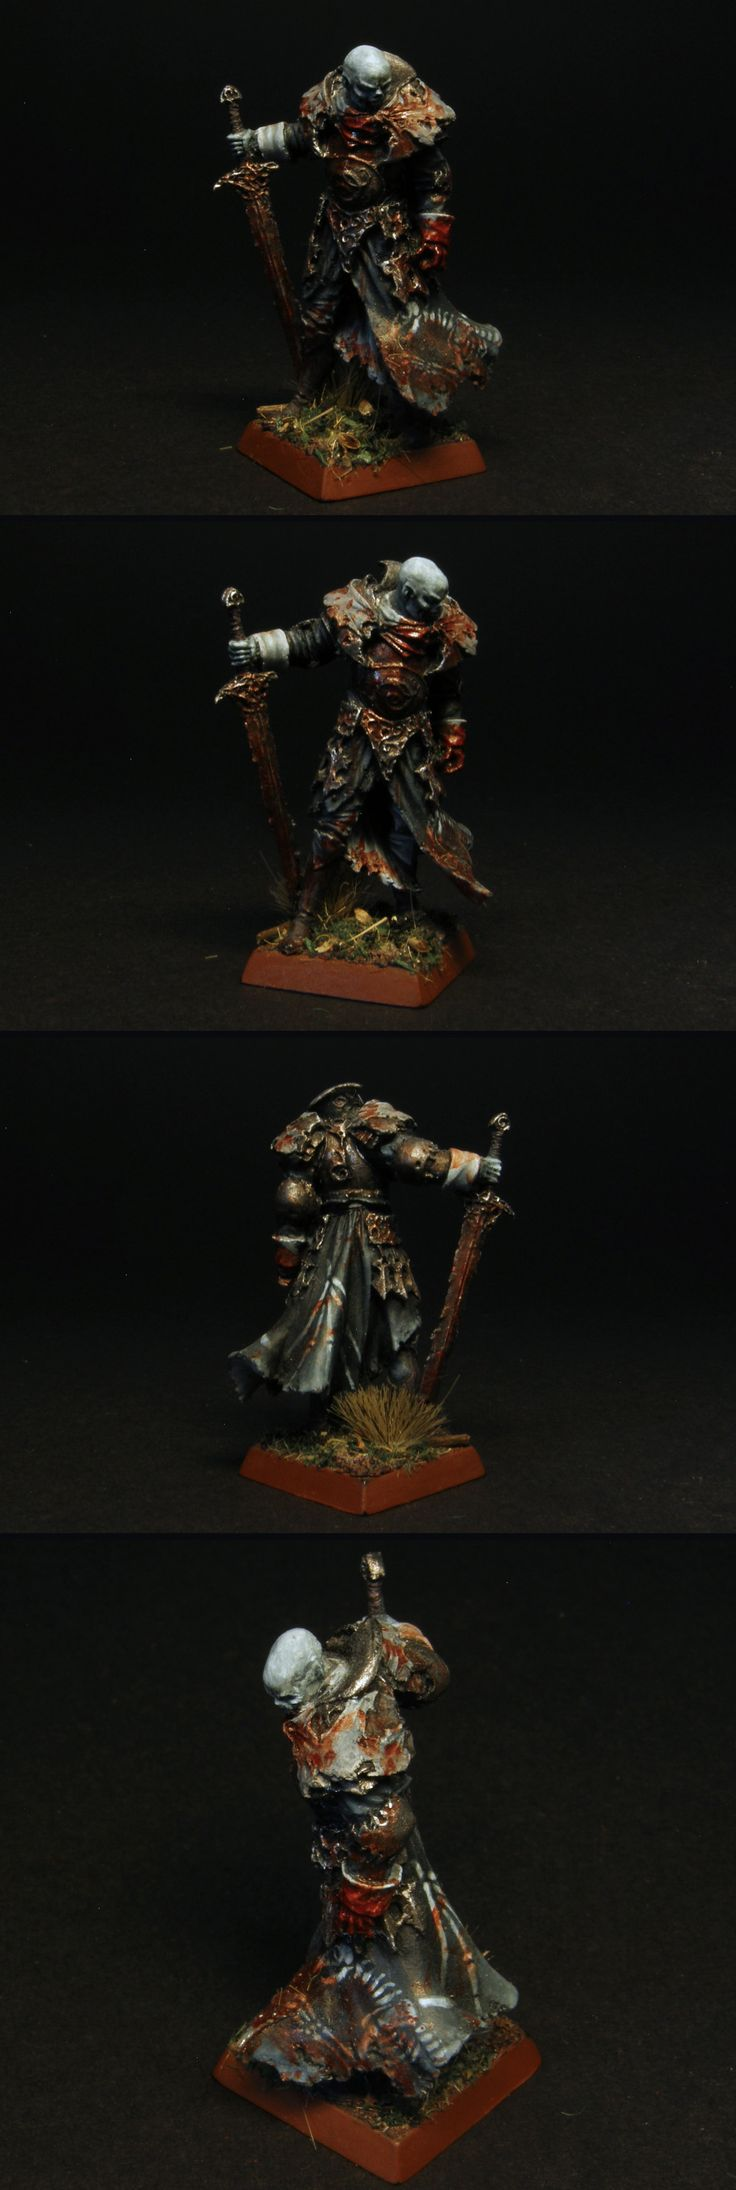 A Vampire Warrior miniature painted for Vampire Counts, Warhammer Fantasy Battle, or Age of Sigmar if need be. A miniature from Enigma Miniatures, Dark Vlad the Manhunter. He would be a Soulblight Vampire in AoS, Death Grand Alliance.